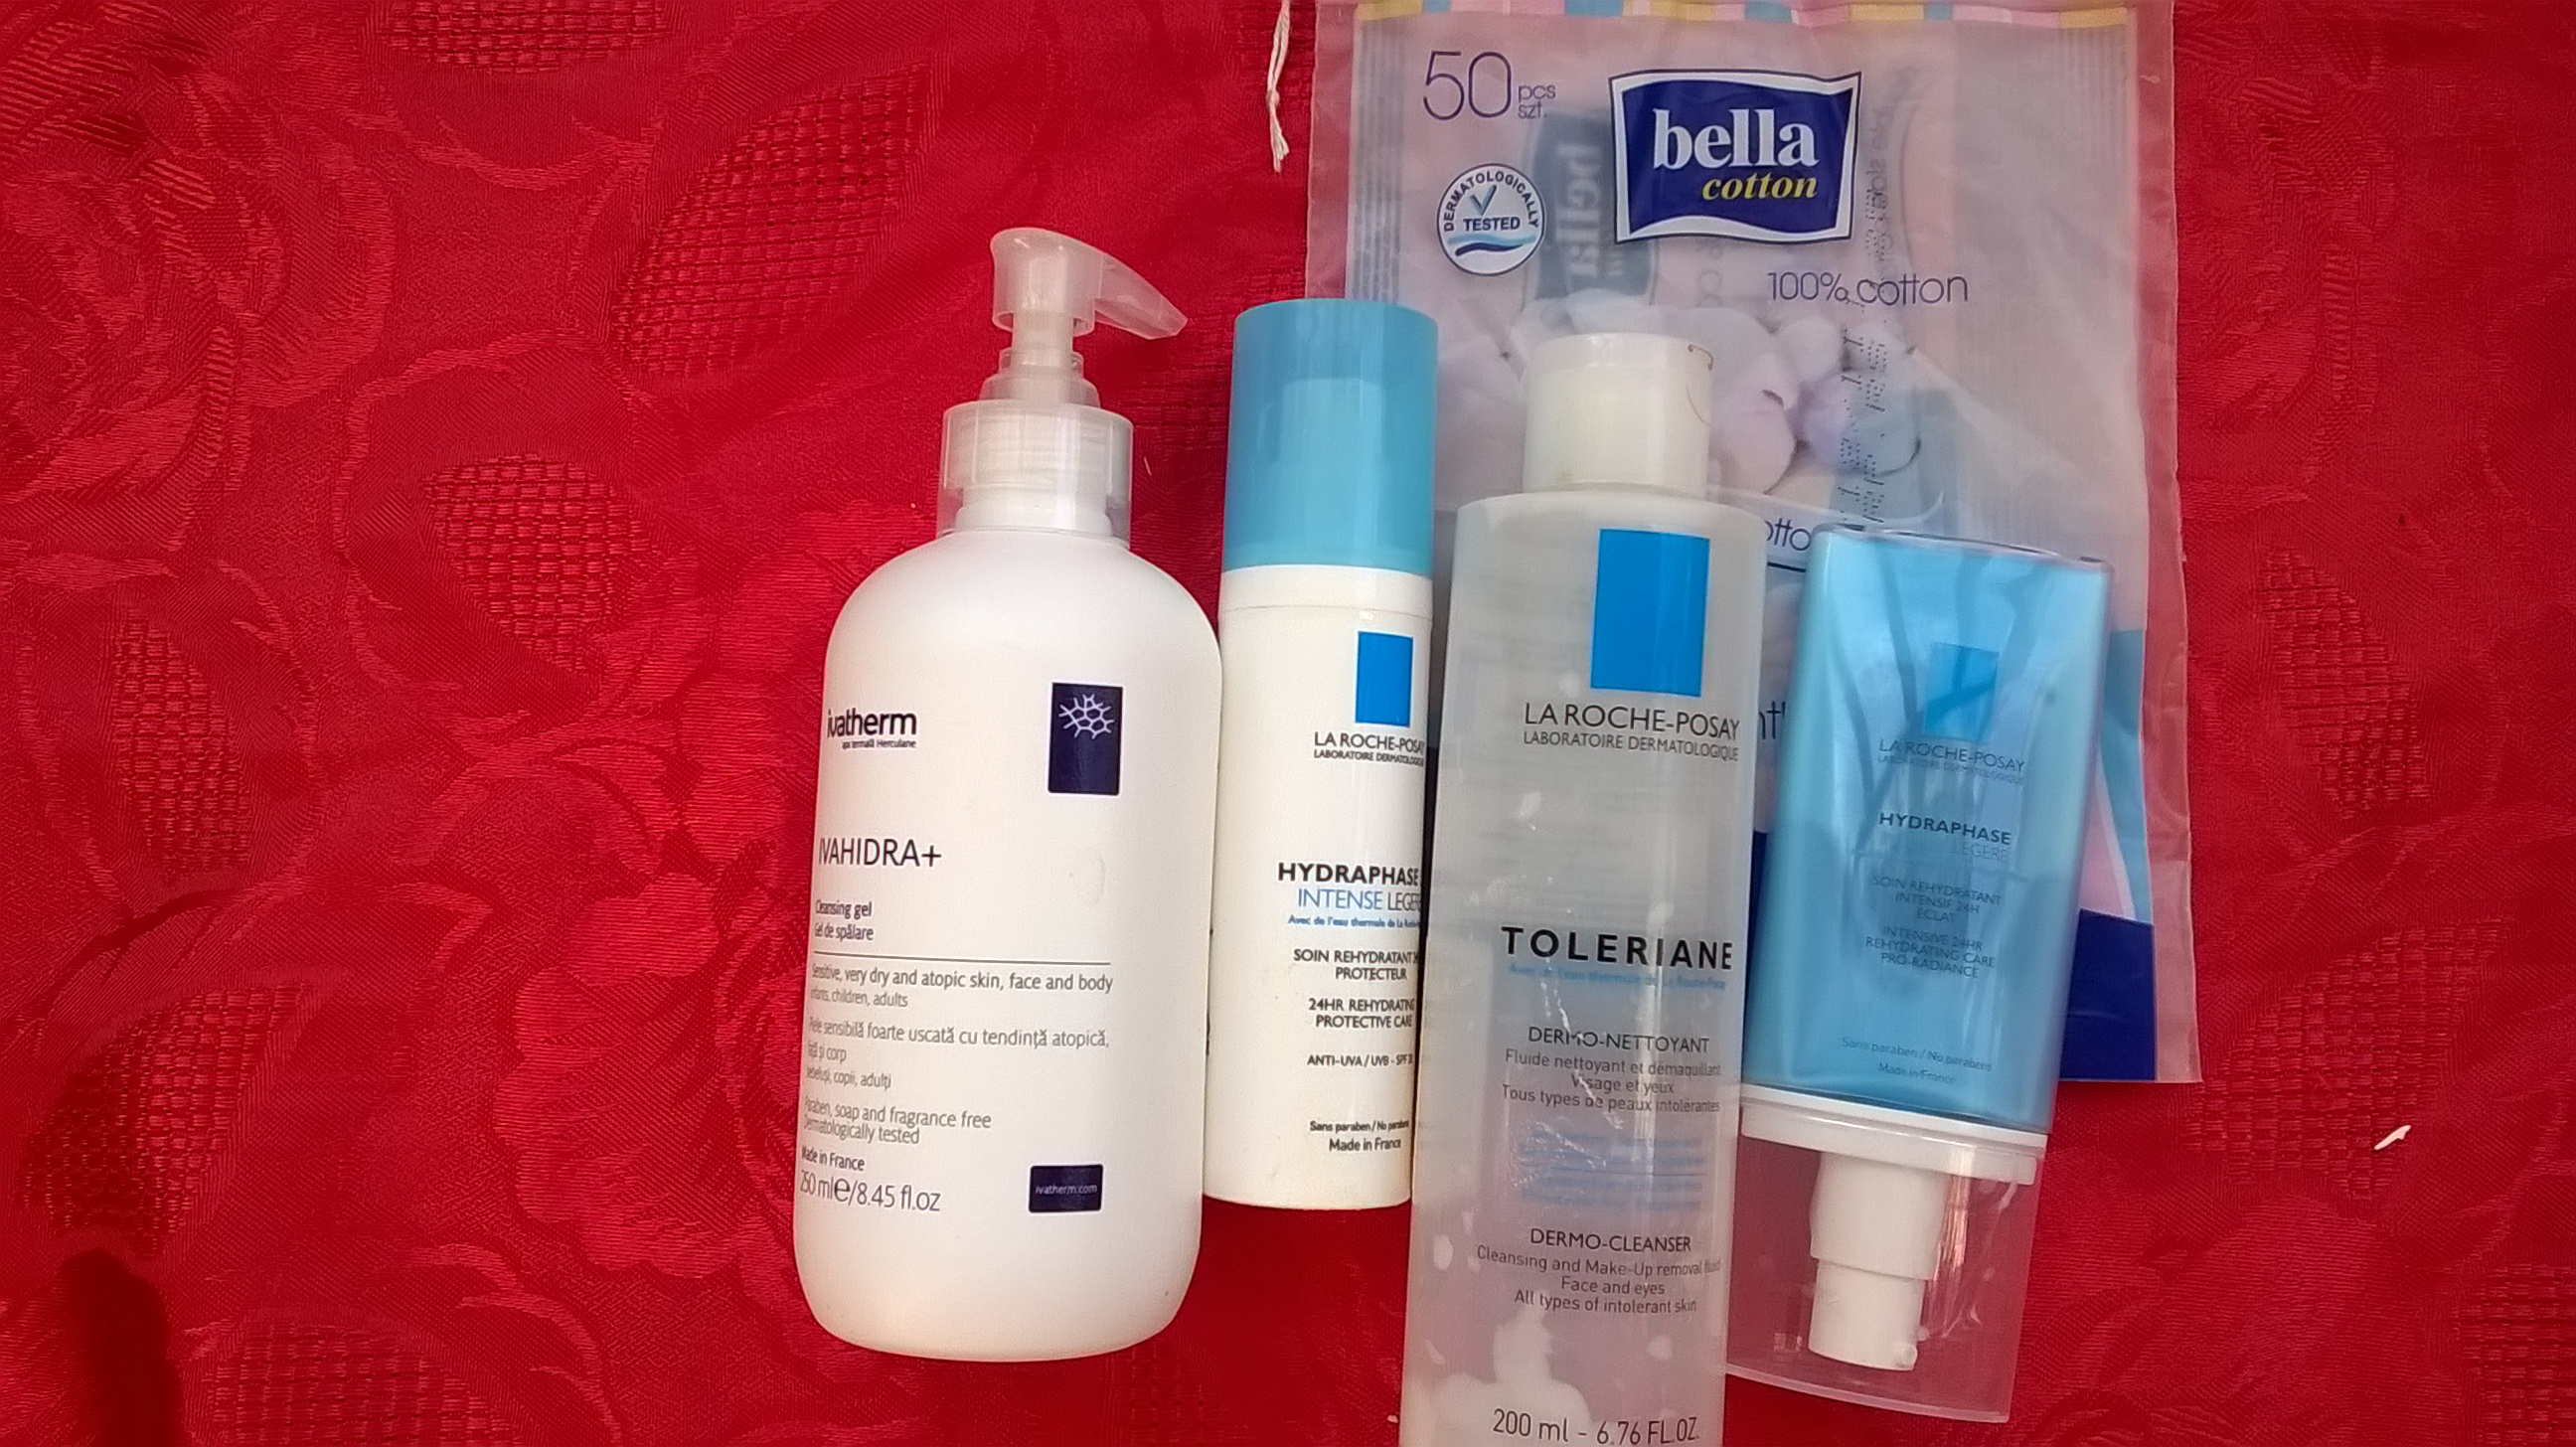 Empties #15 – #18 [part 1]